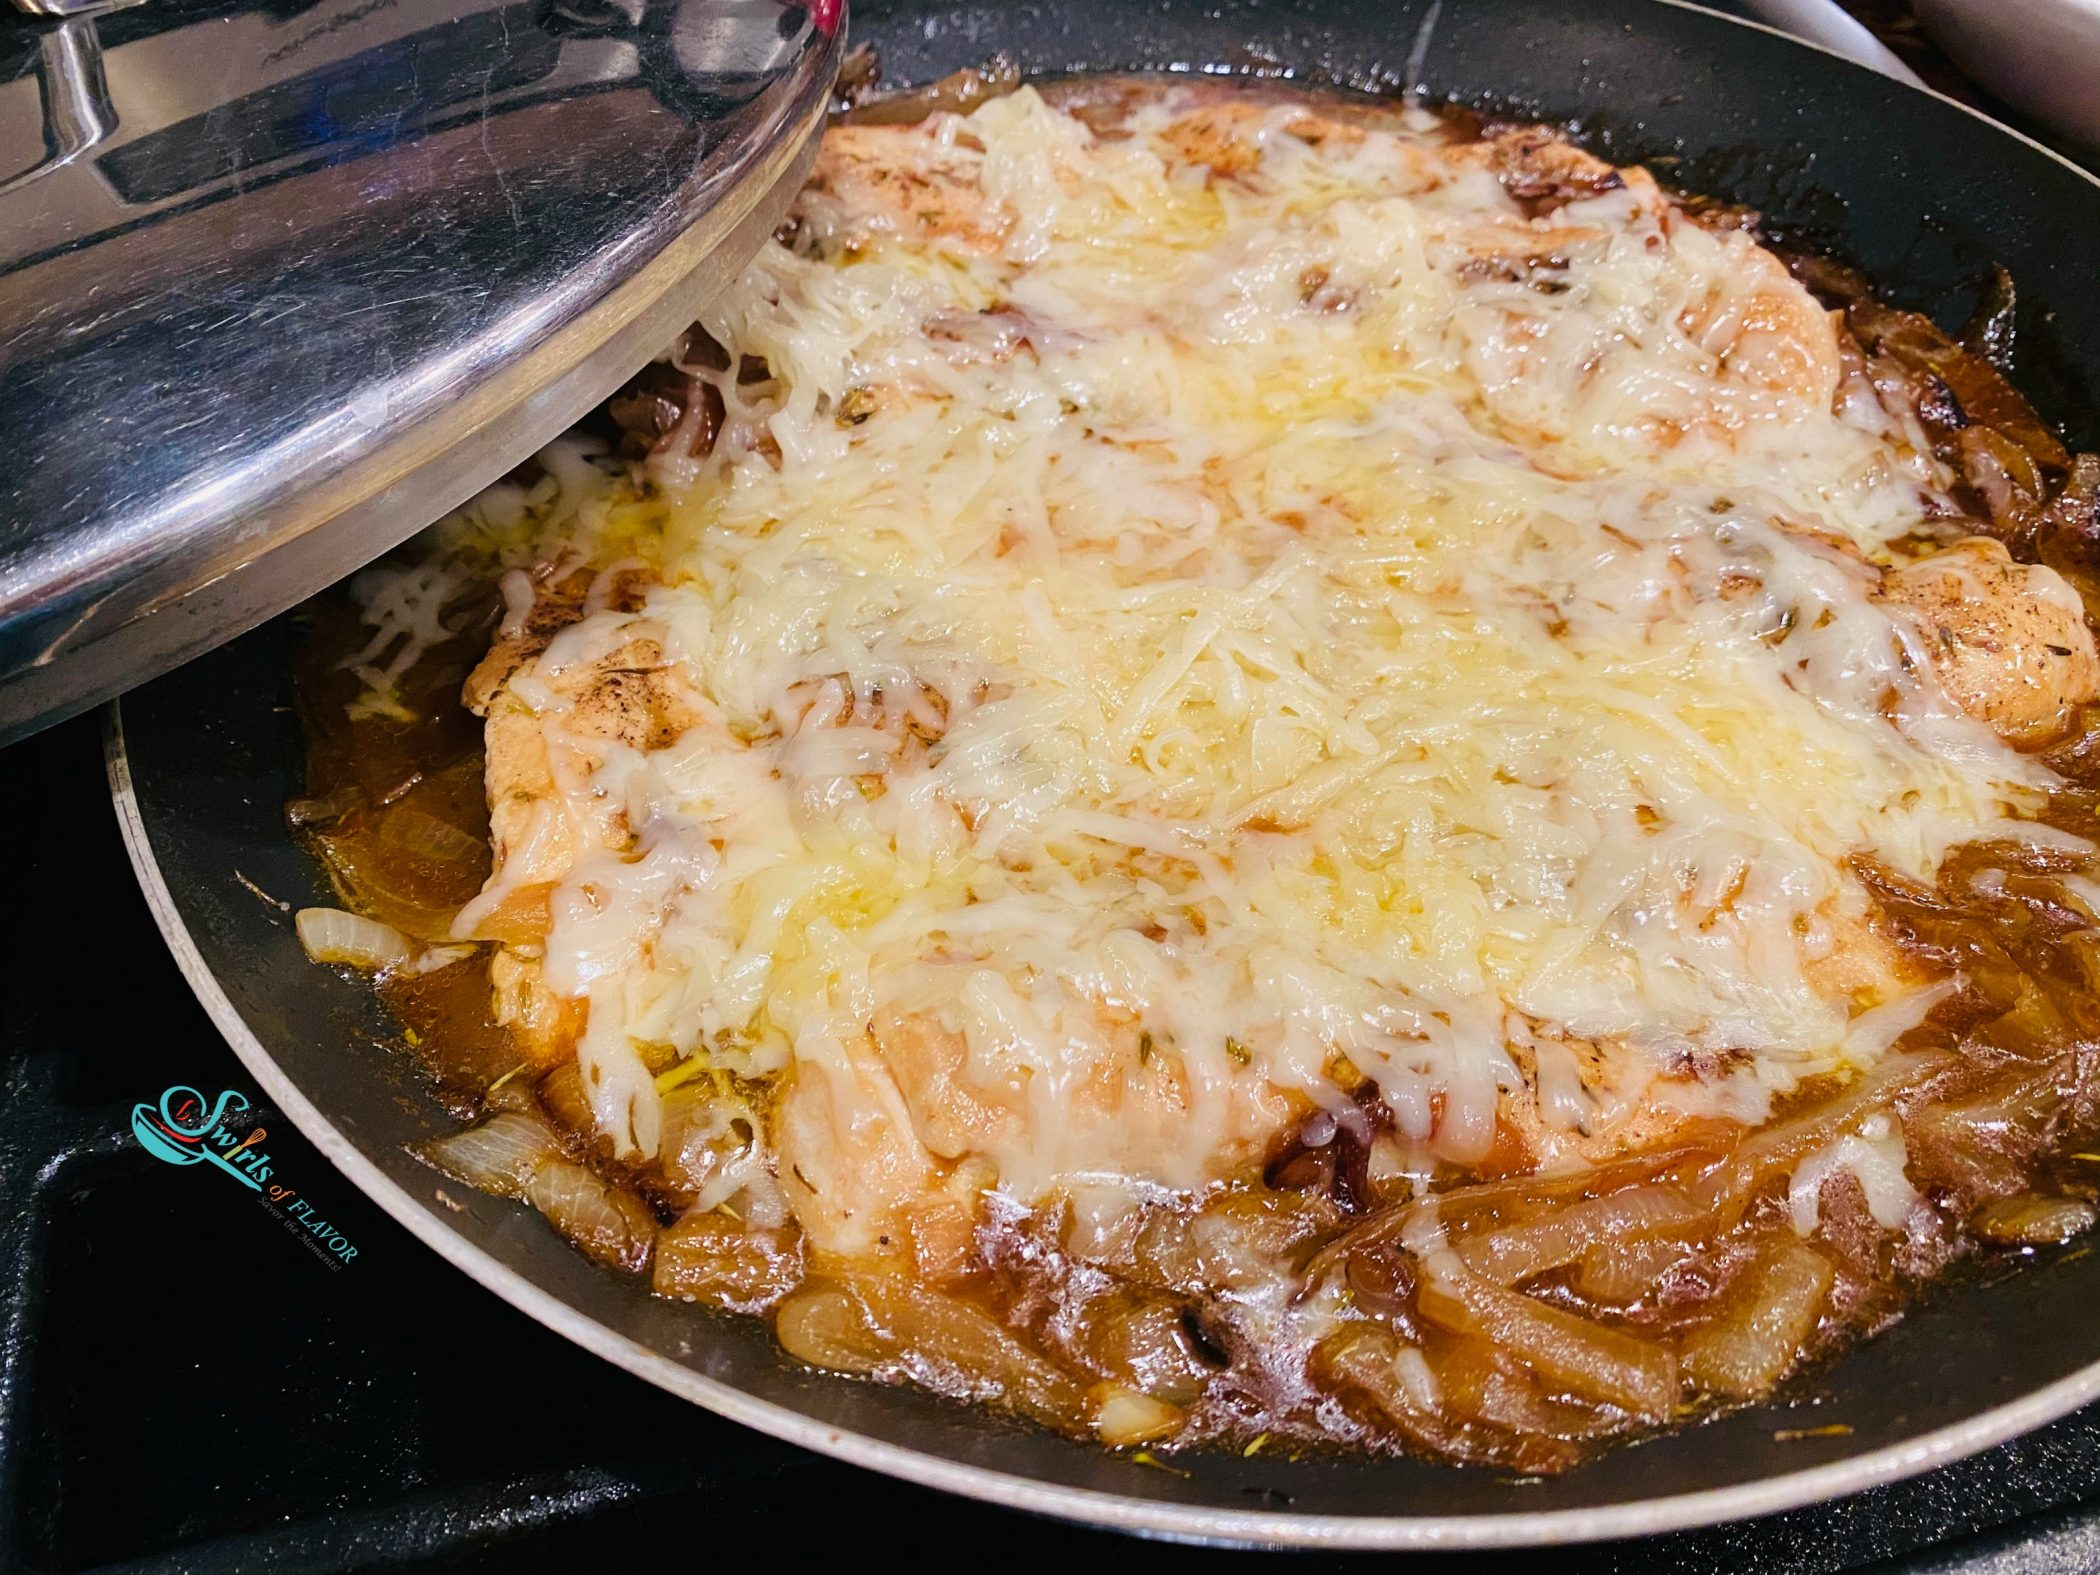 French Onion Chicken with melted cheese